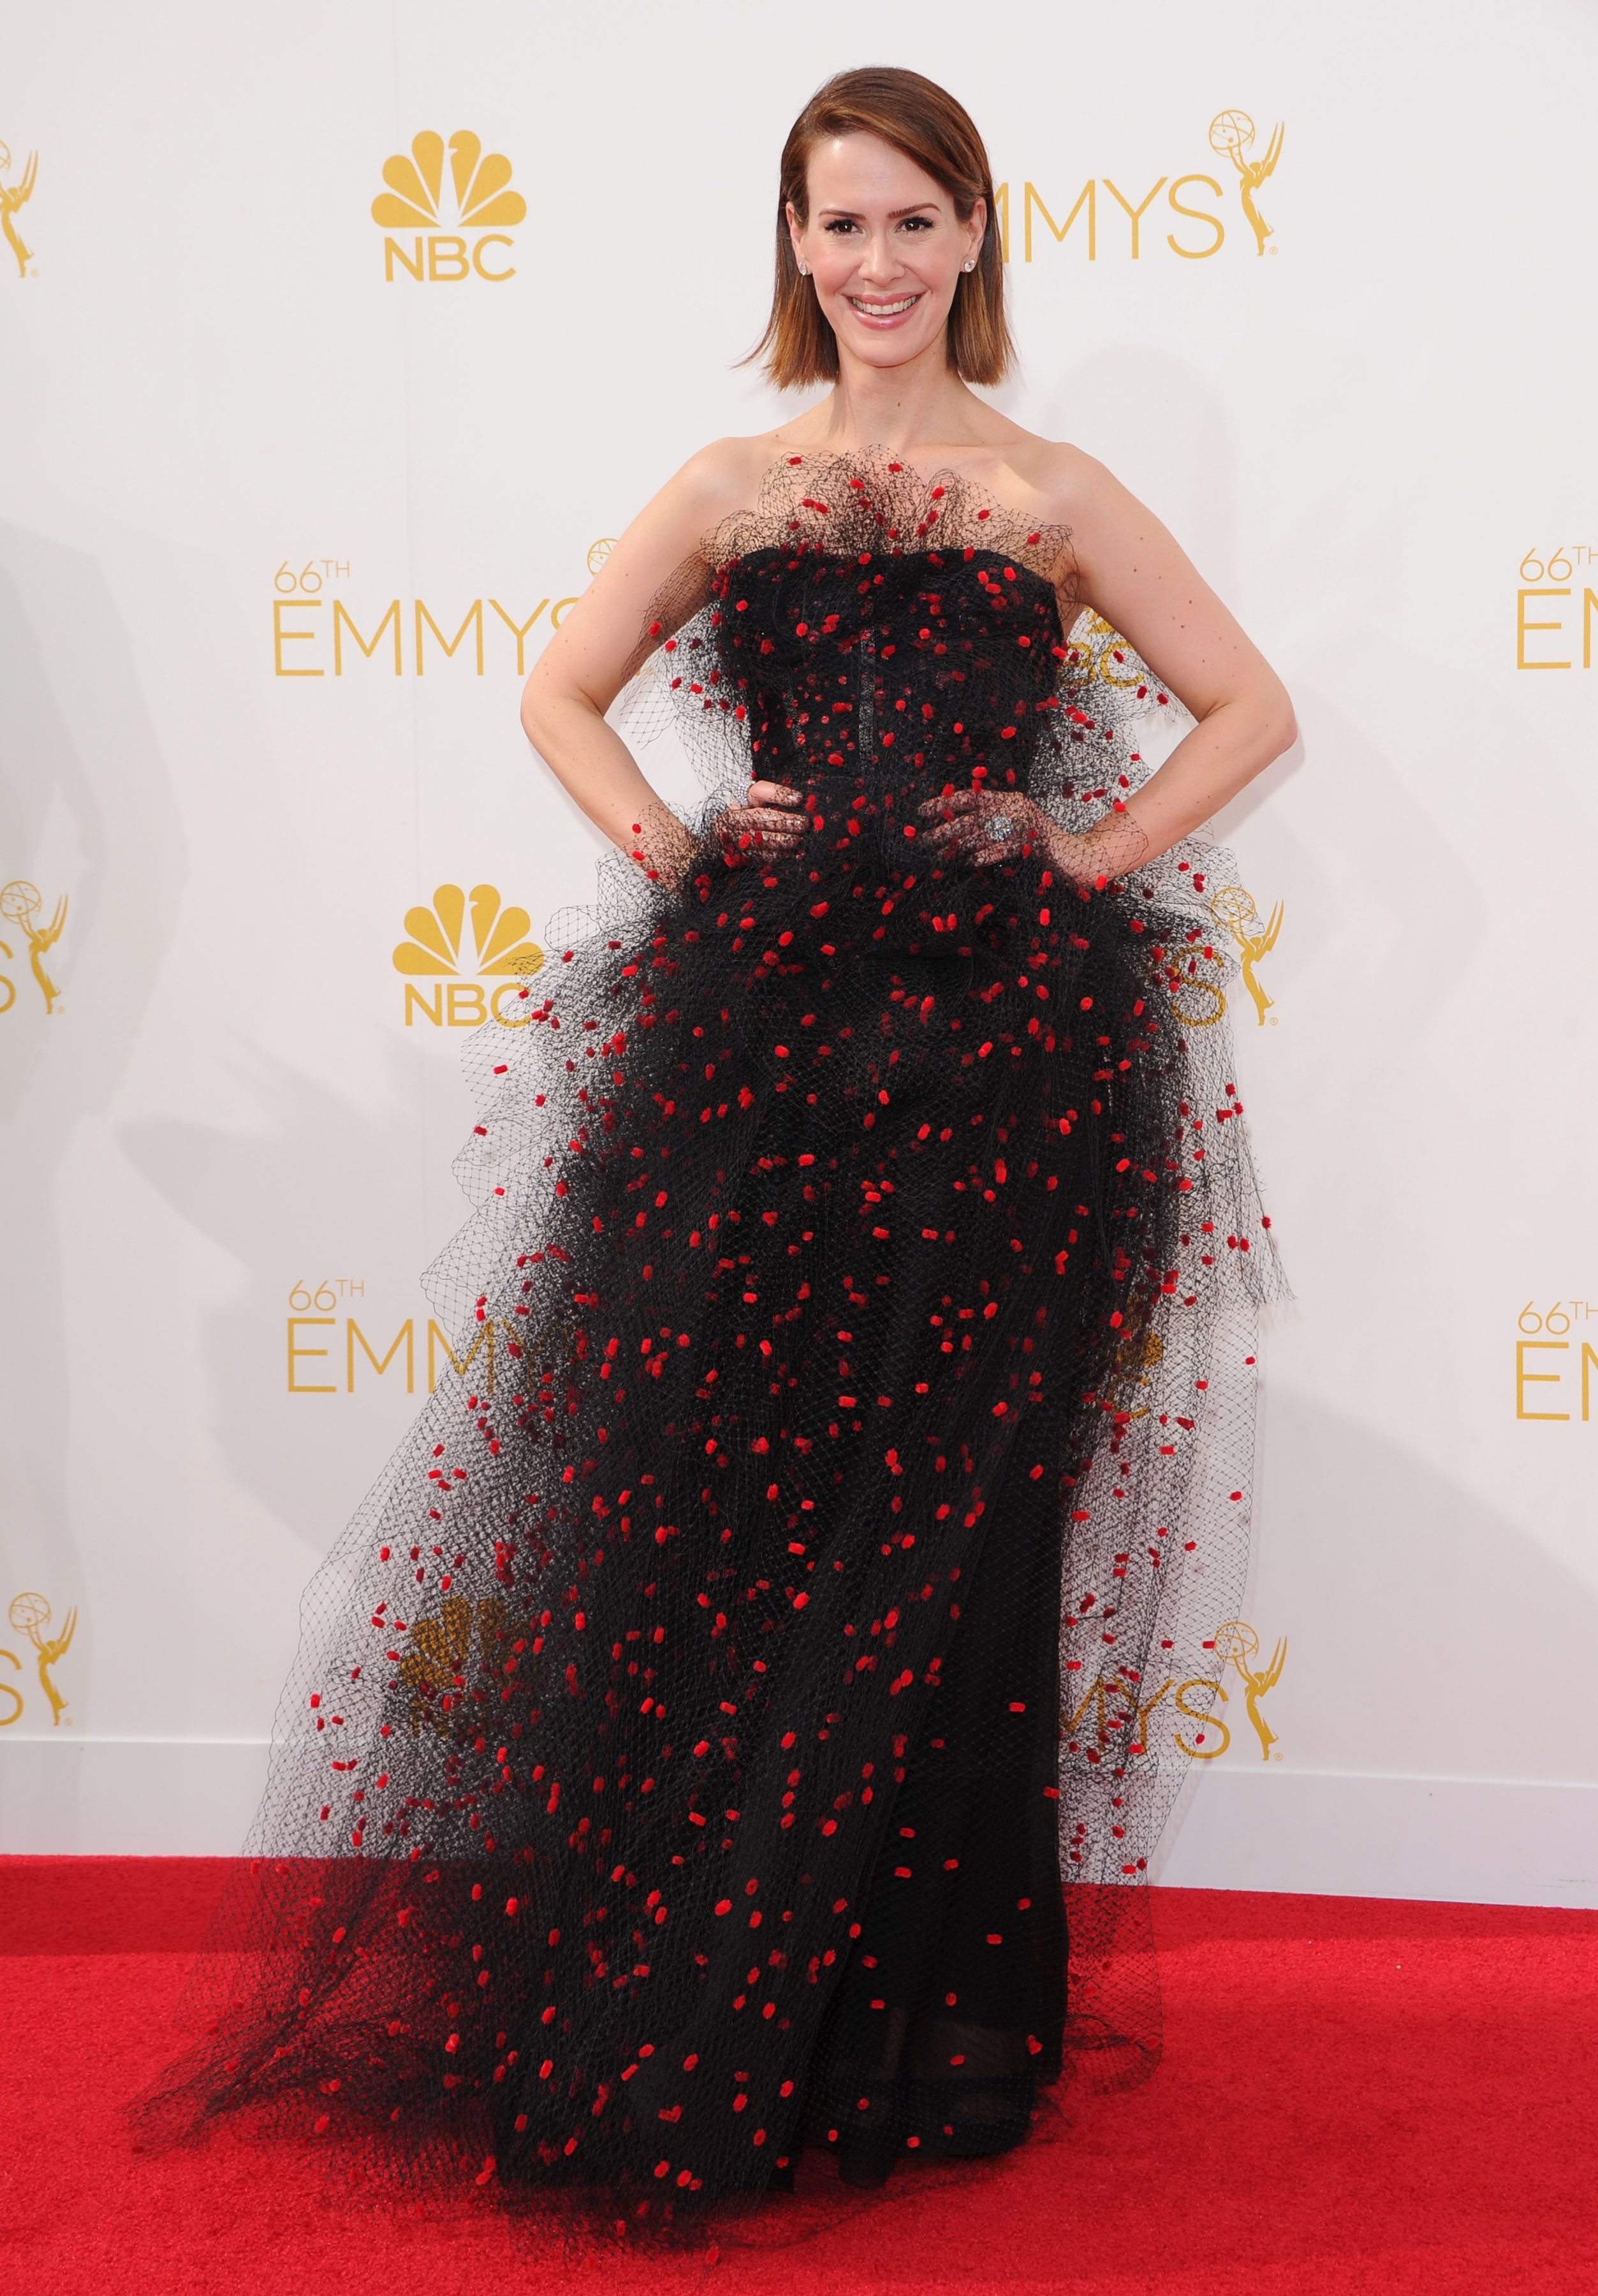 The 30 Most Memorable Emmy Dresses of All Time